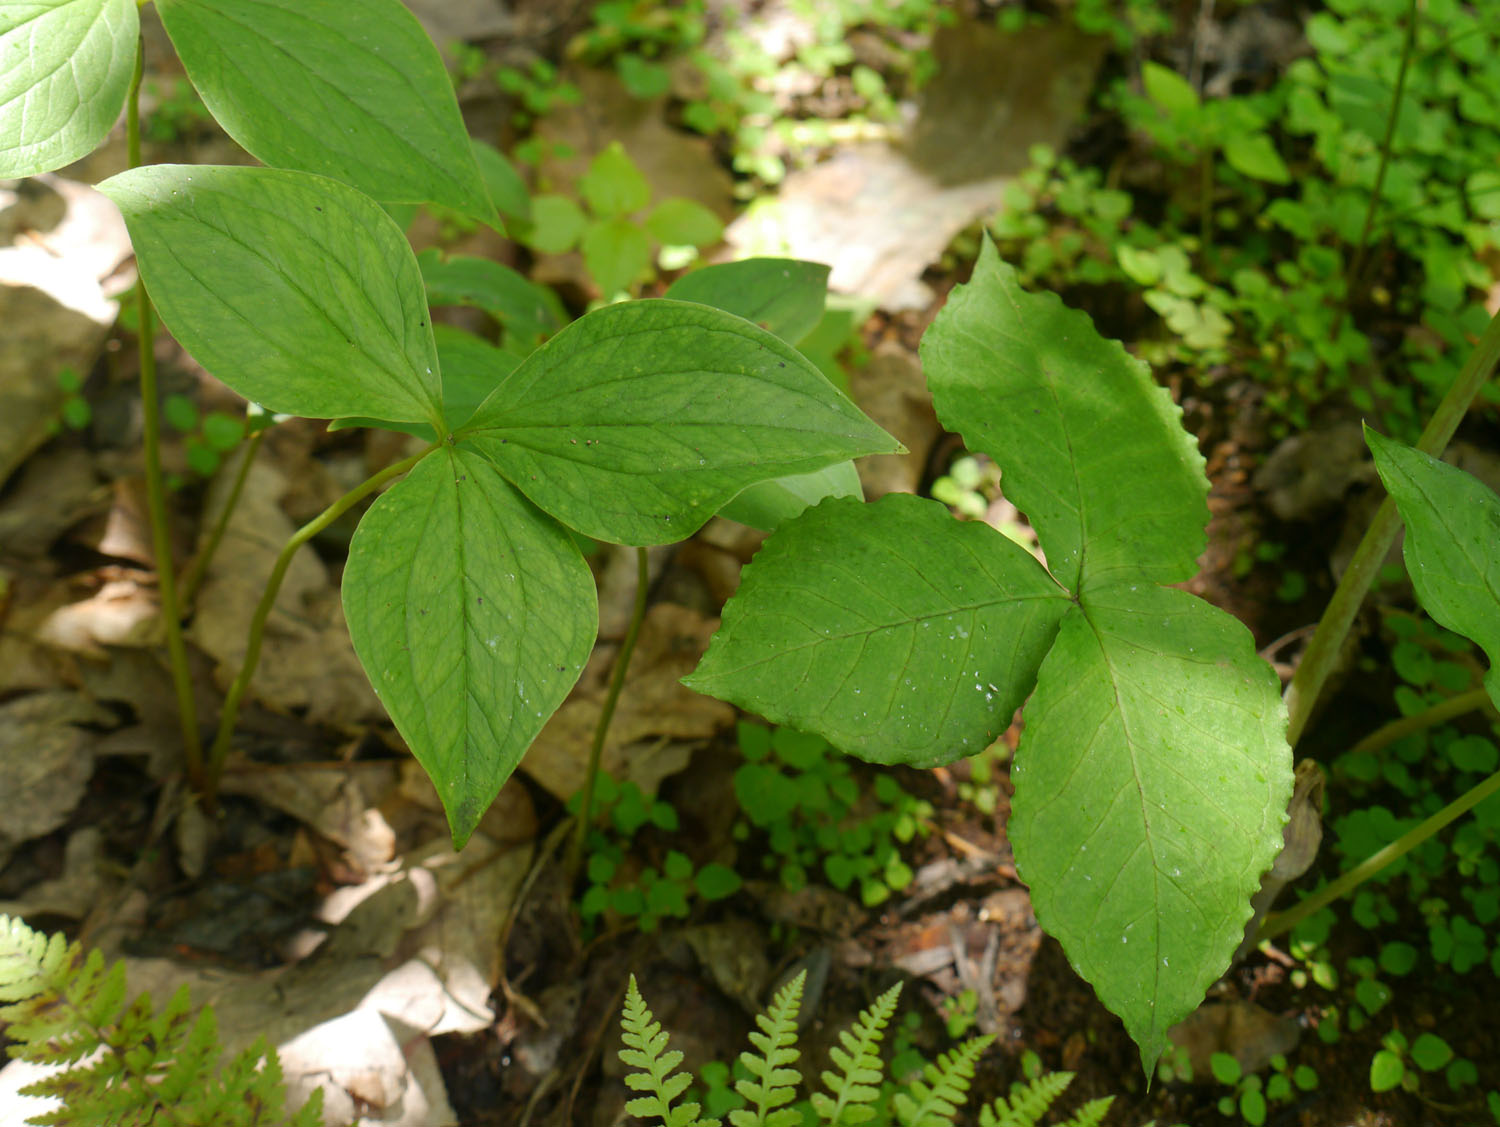 Trillium and jack-in-the-pulpit